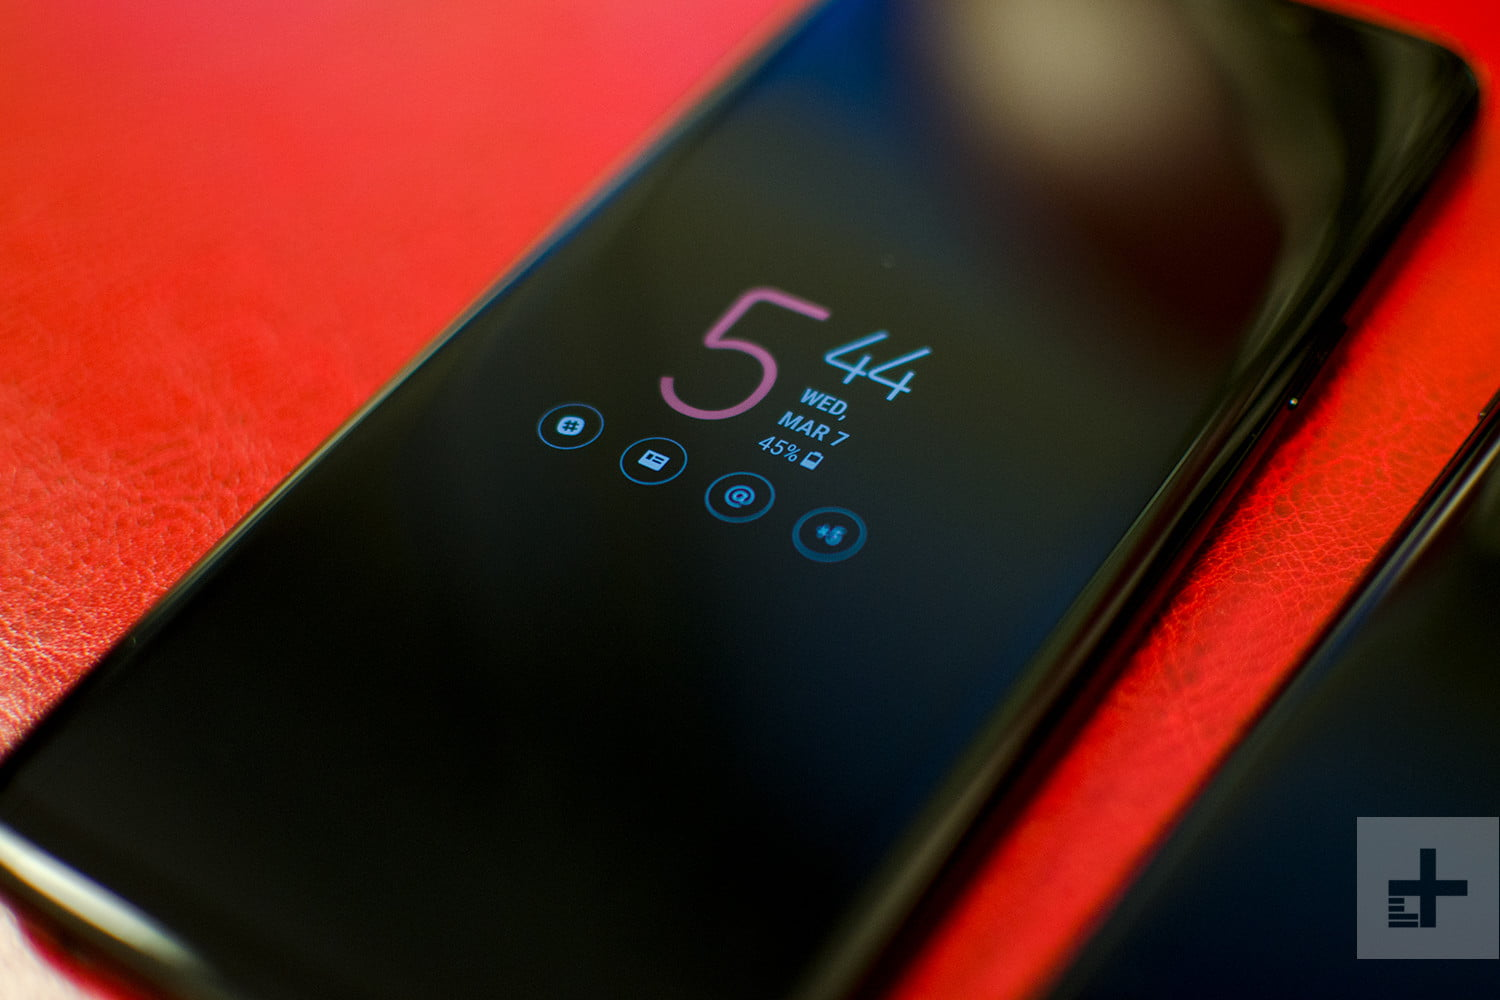 Your Galaxy Phone Probably Won't Send Images to Random